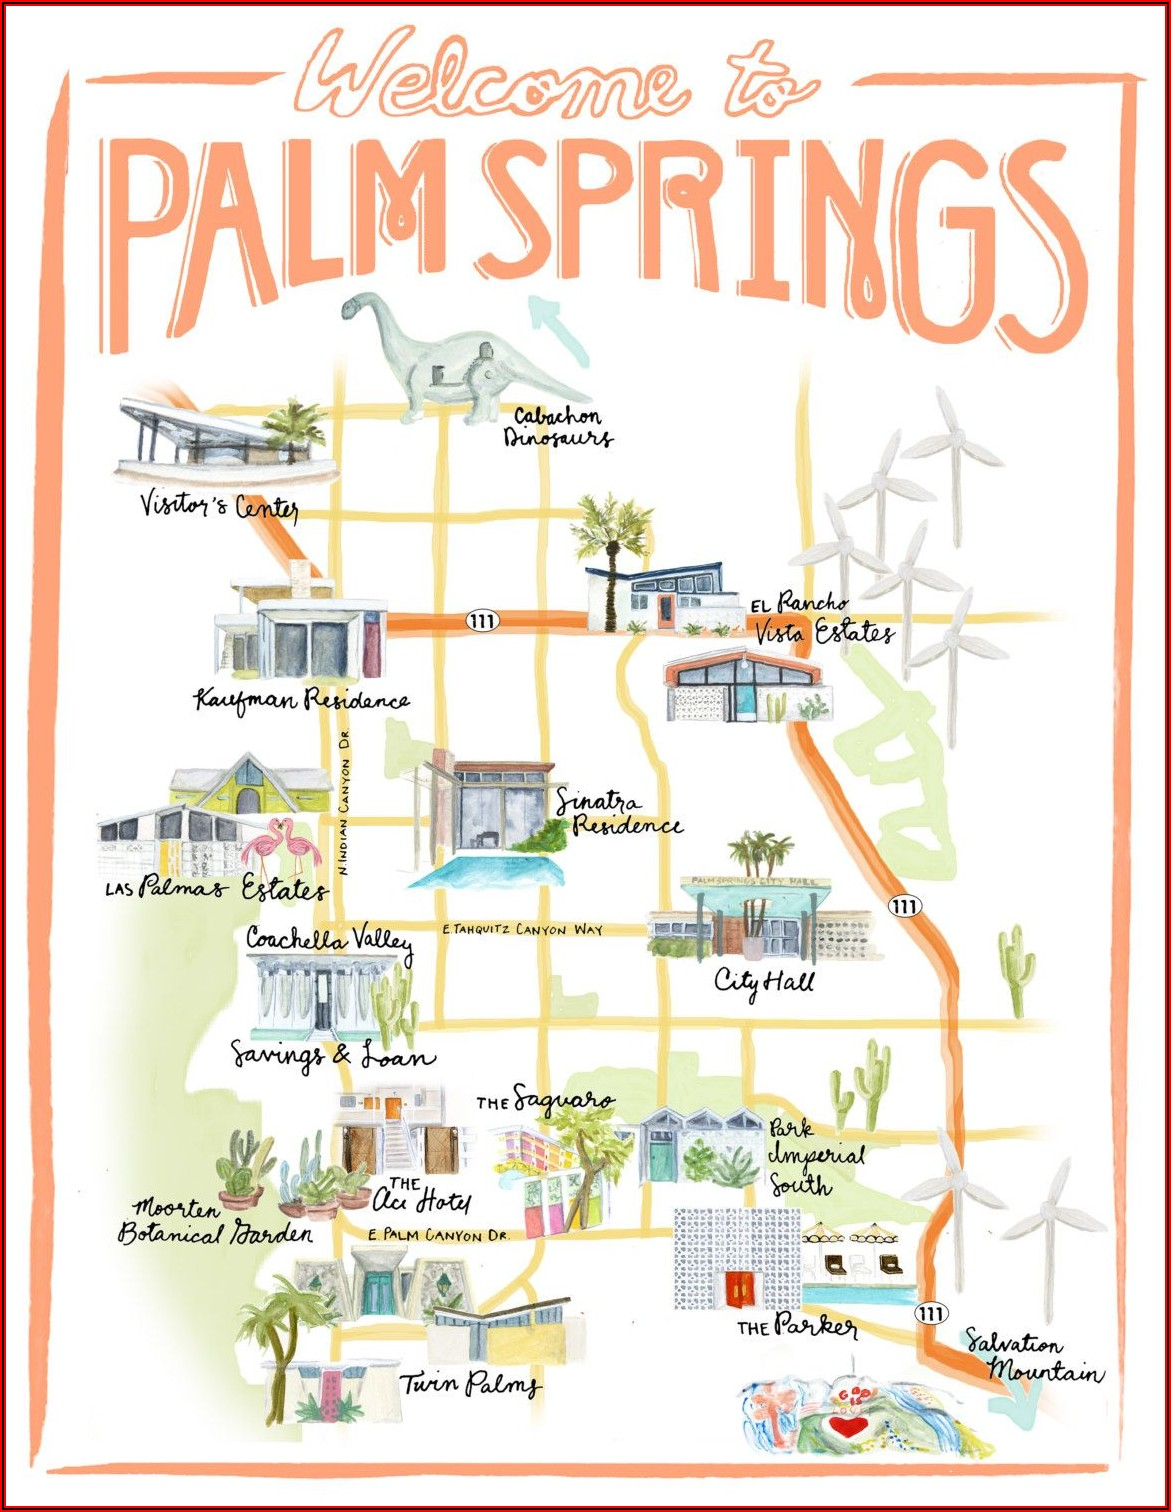 Palm Springs Gay Hotels Map